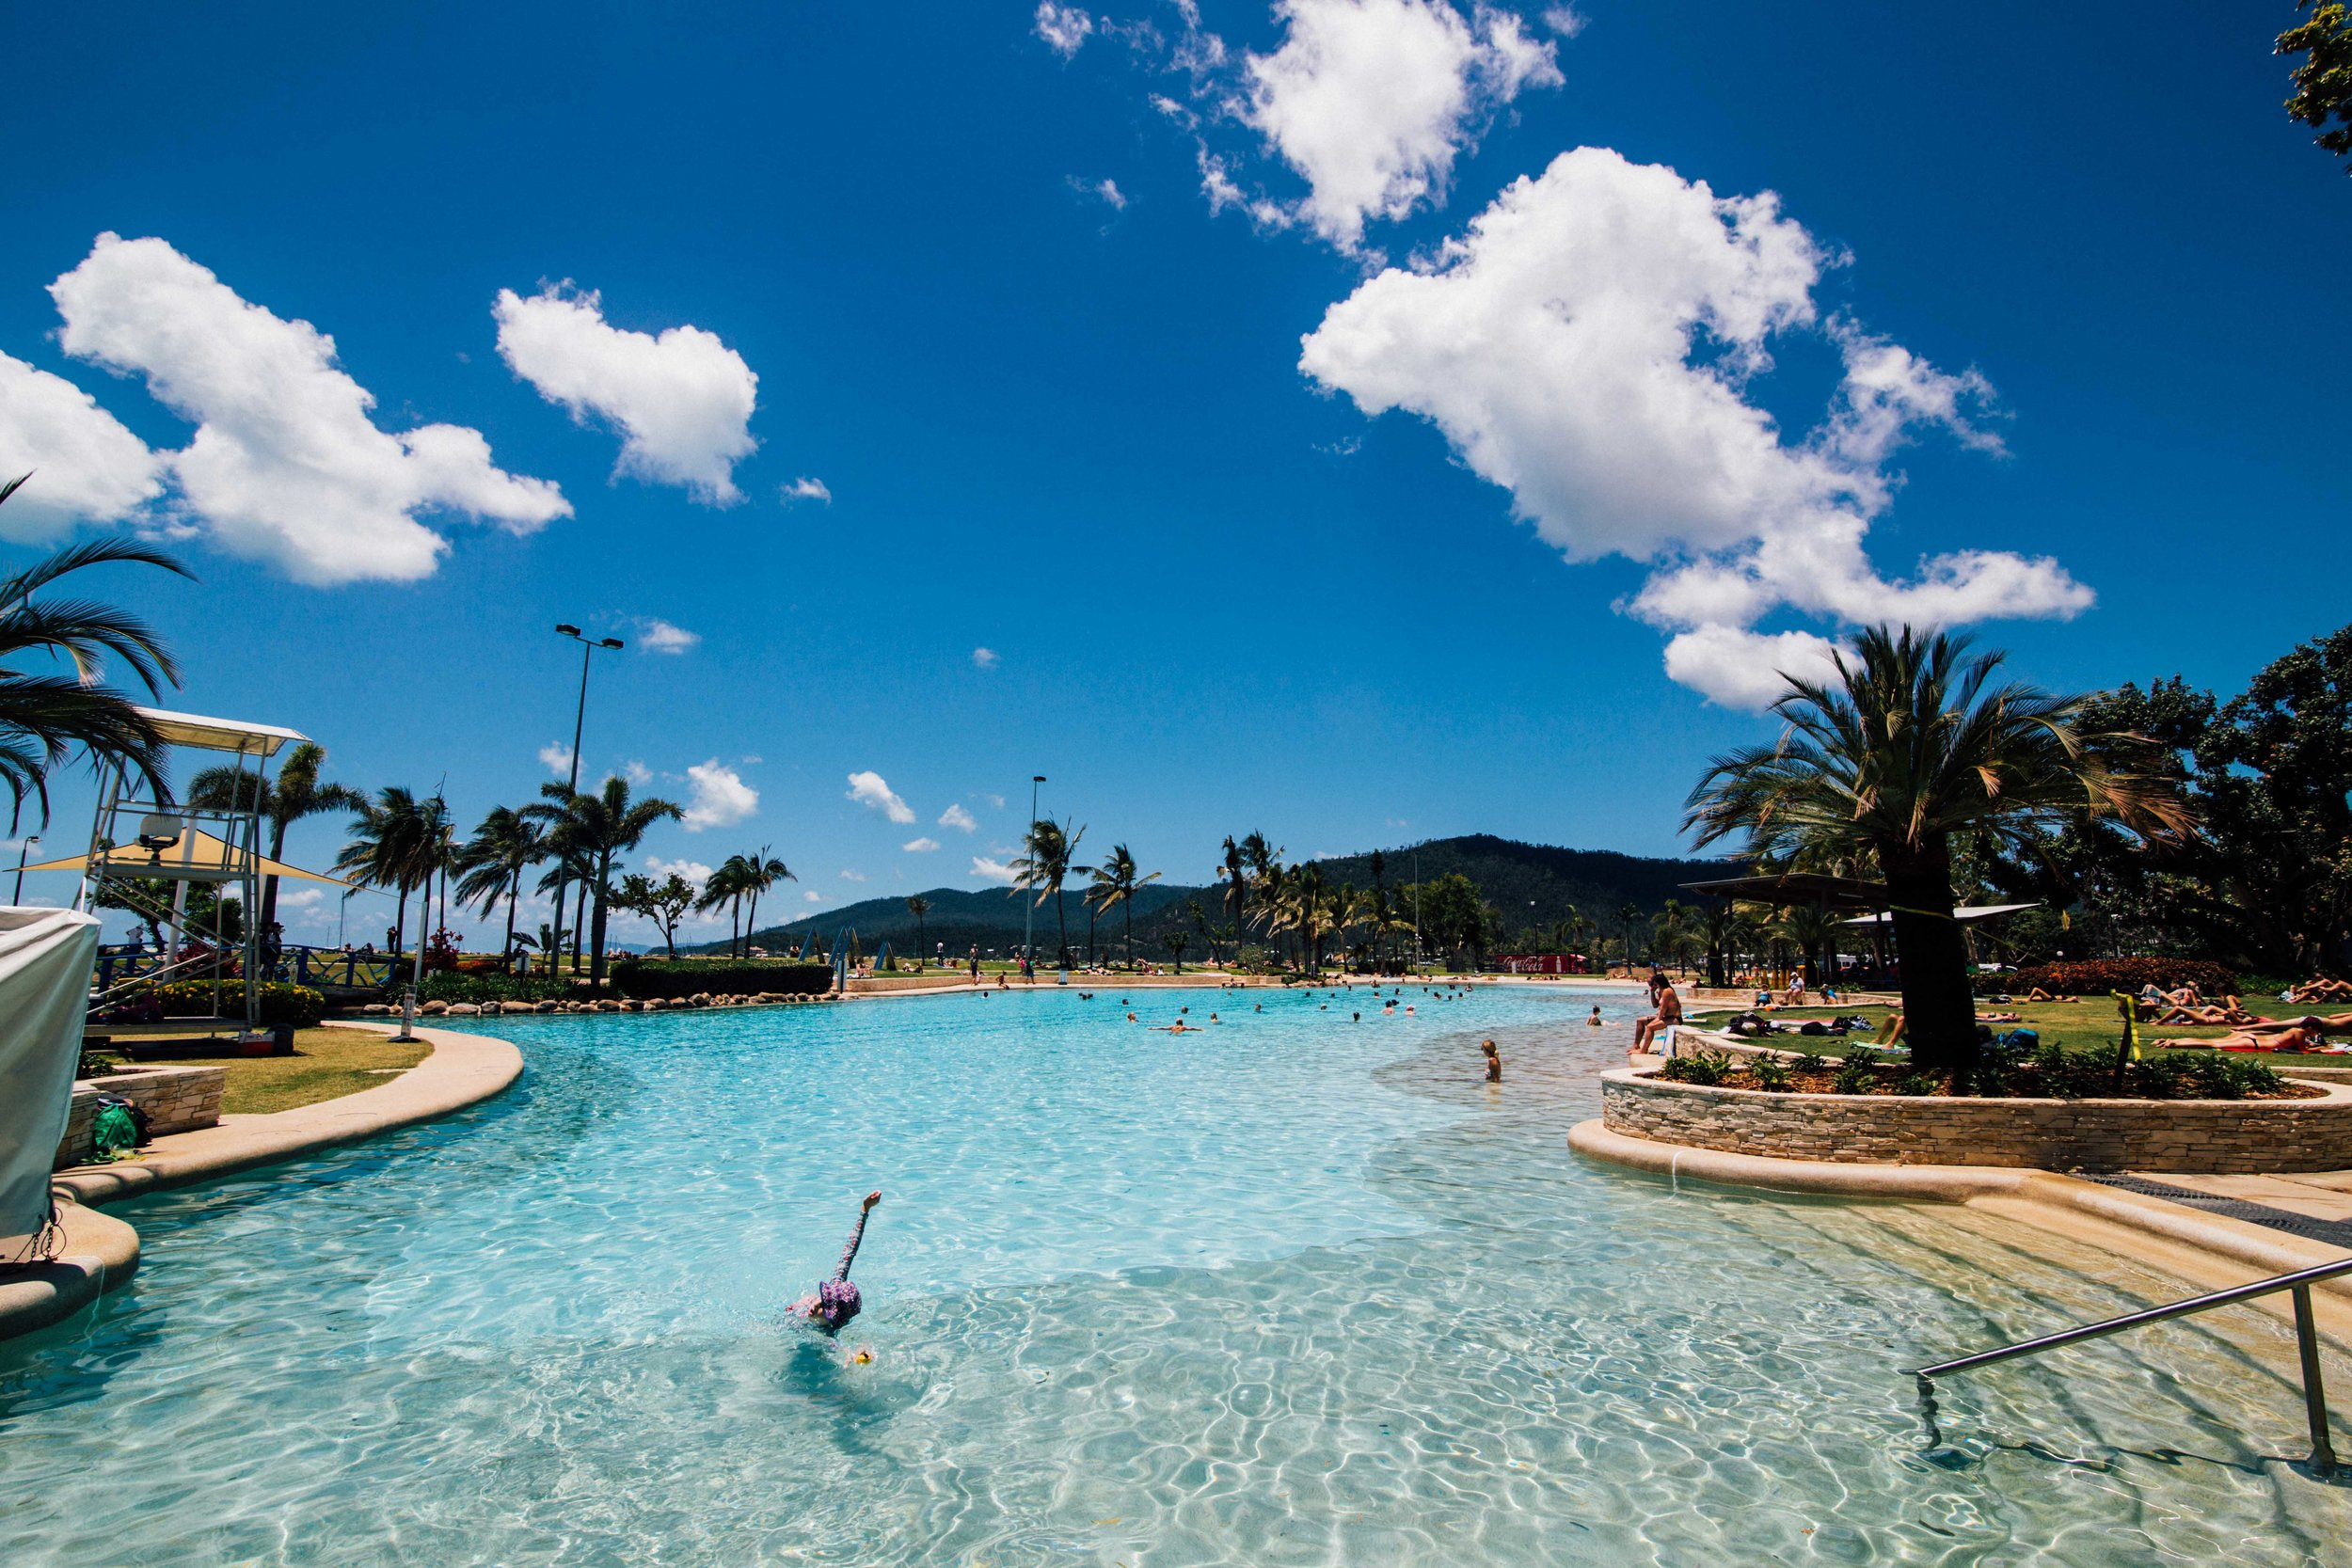 Airlie Beach Free Lagoon! Photo: Marine Raynard.